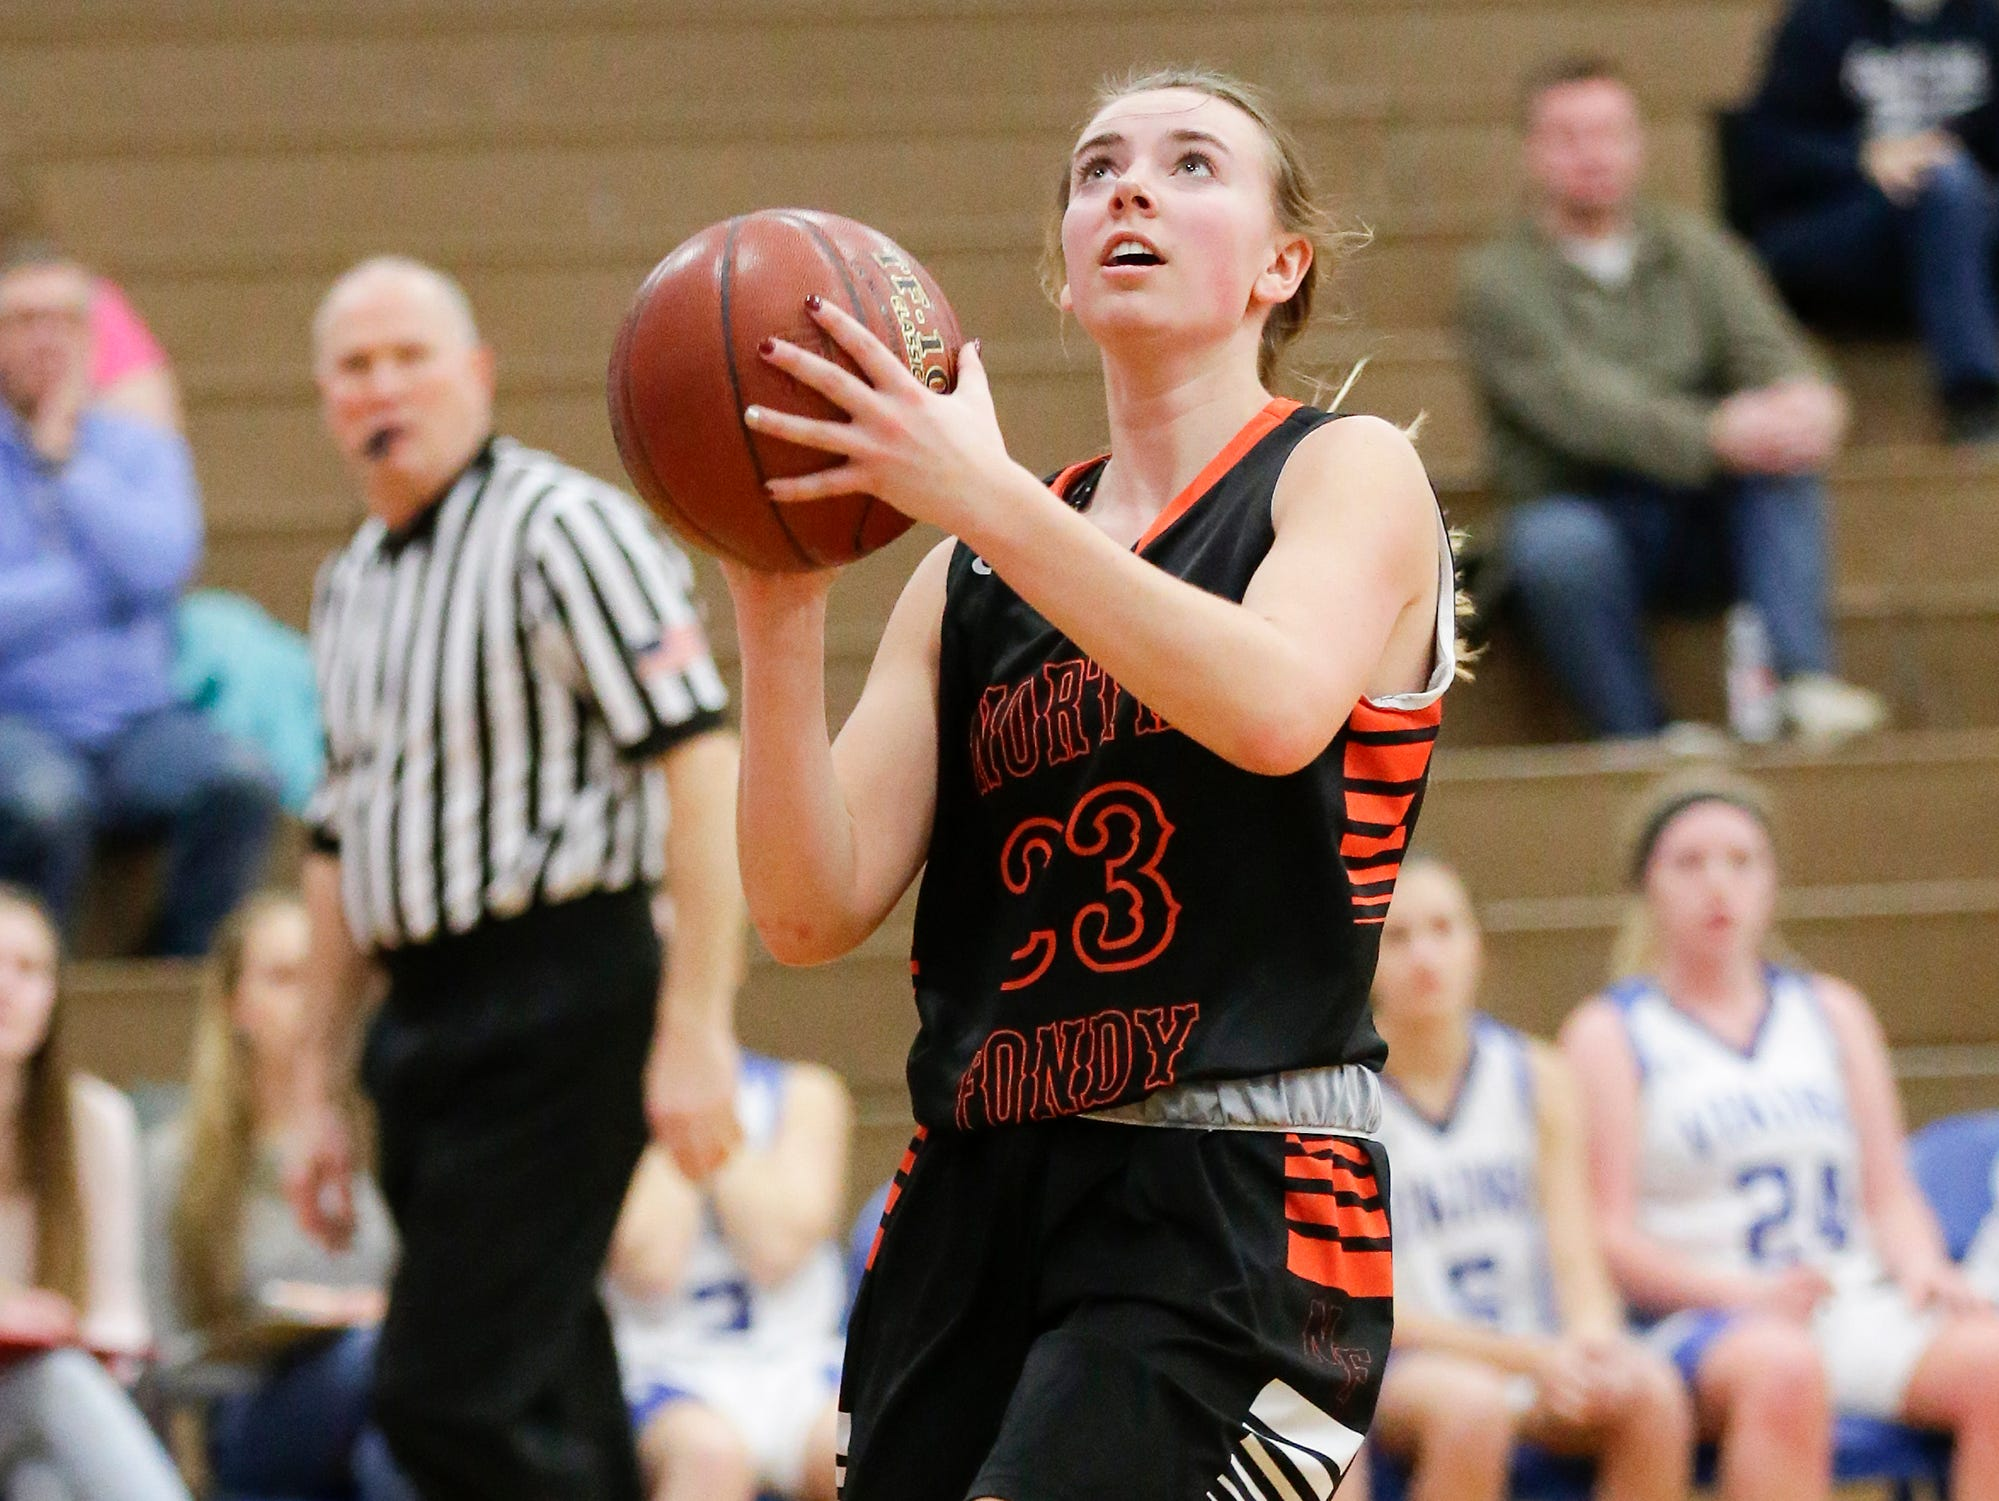 North Fond du Lac High School girls basketball's Jordyn Stattbacher goes in for a basket against Winnebago Lutheran Academy January 10, 2019 during their game in Fond du Lac. Doug Raflik/USA TODAY NETWORK-Wisconsin